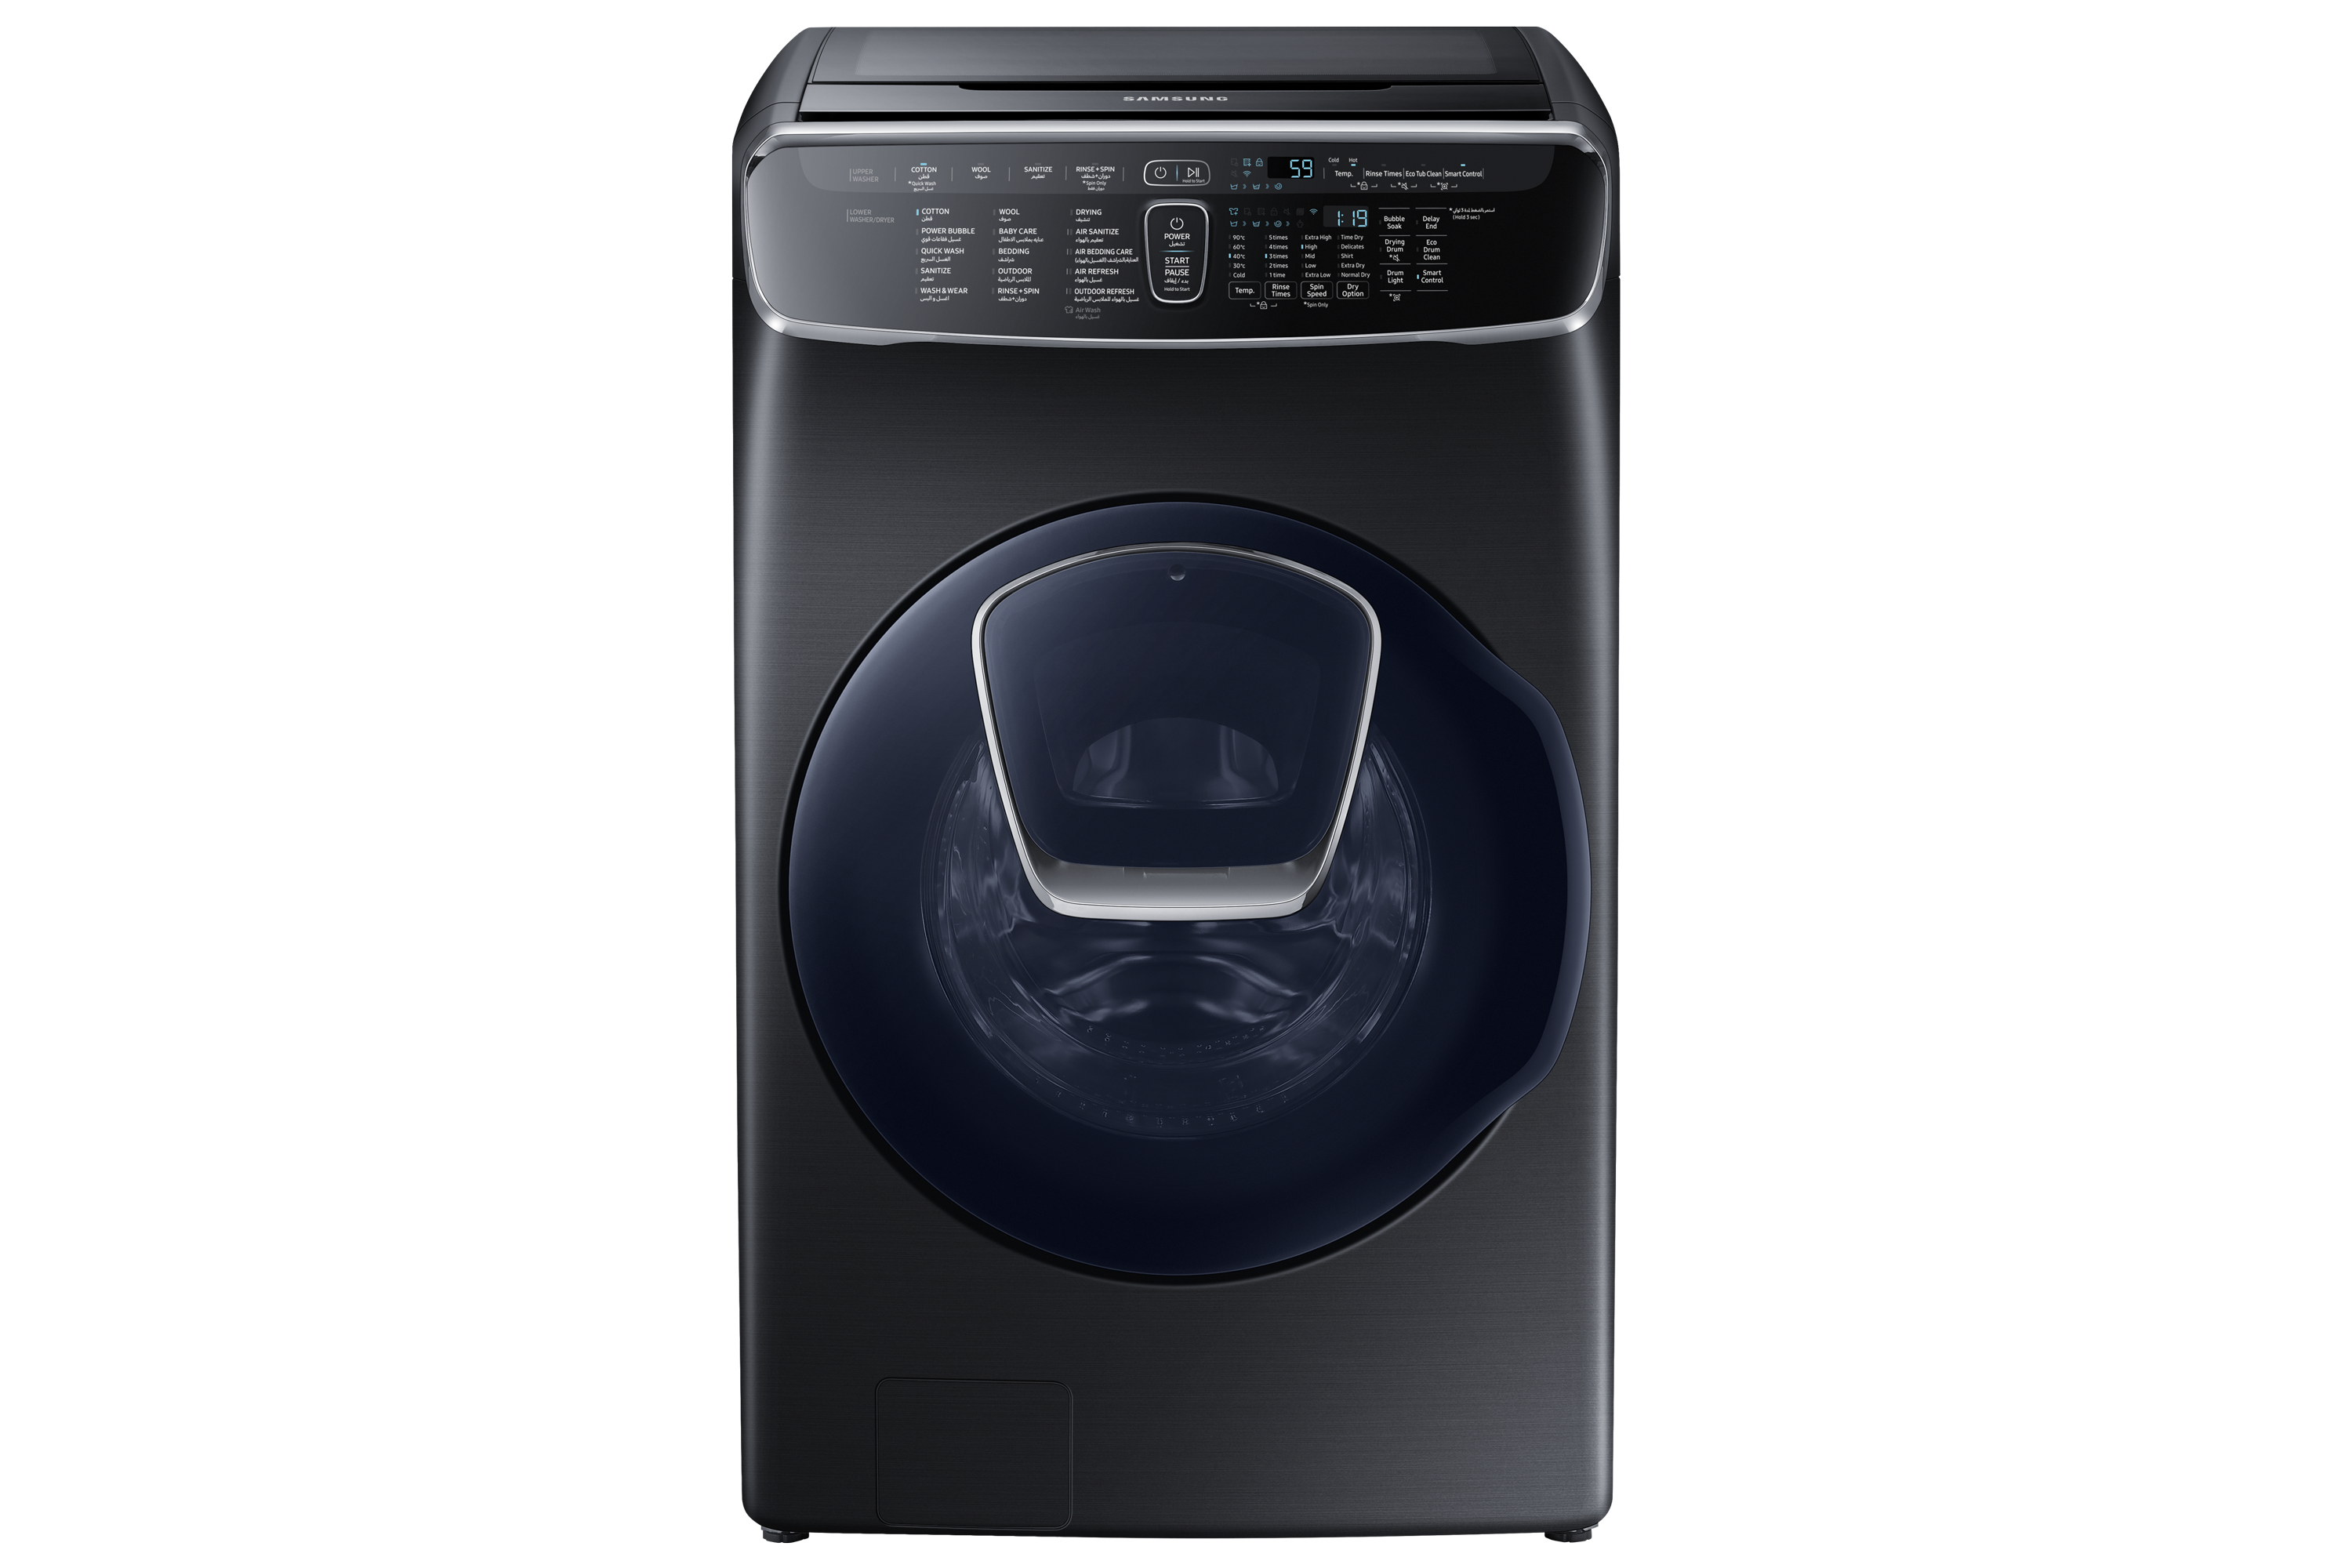 FlexWash™ combo with AddWash 17.5 Kg Washer / 9 Kg Dryer / 3.5 Kg Compact Wash